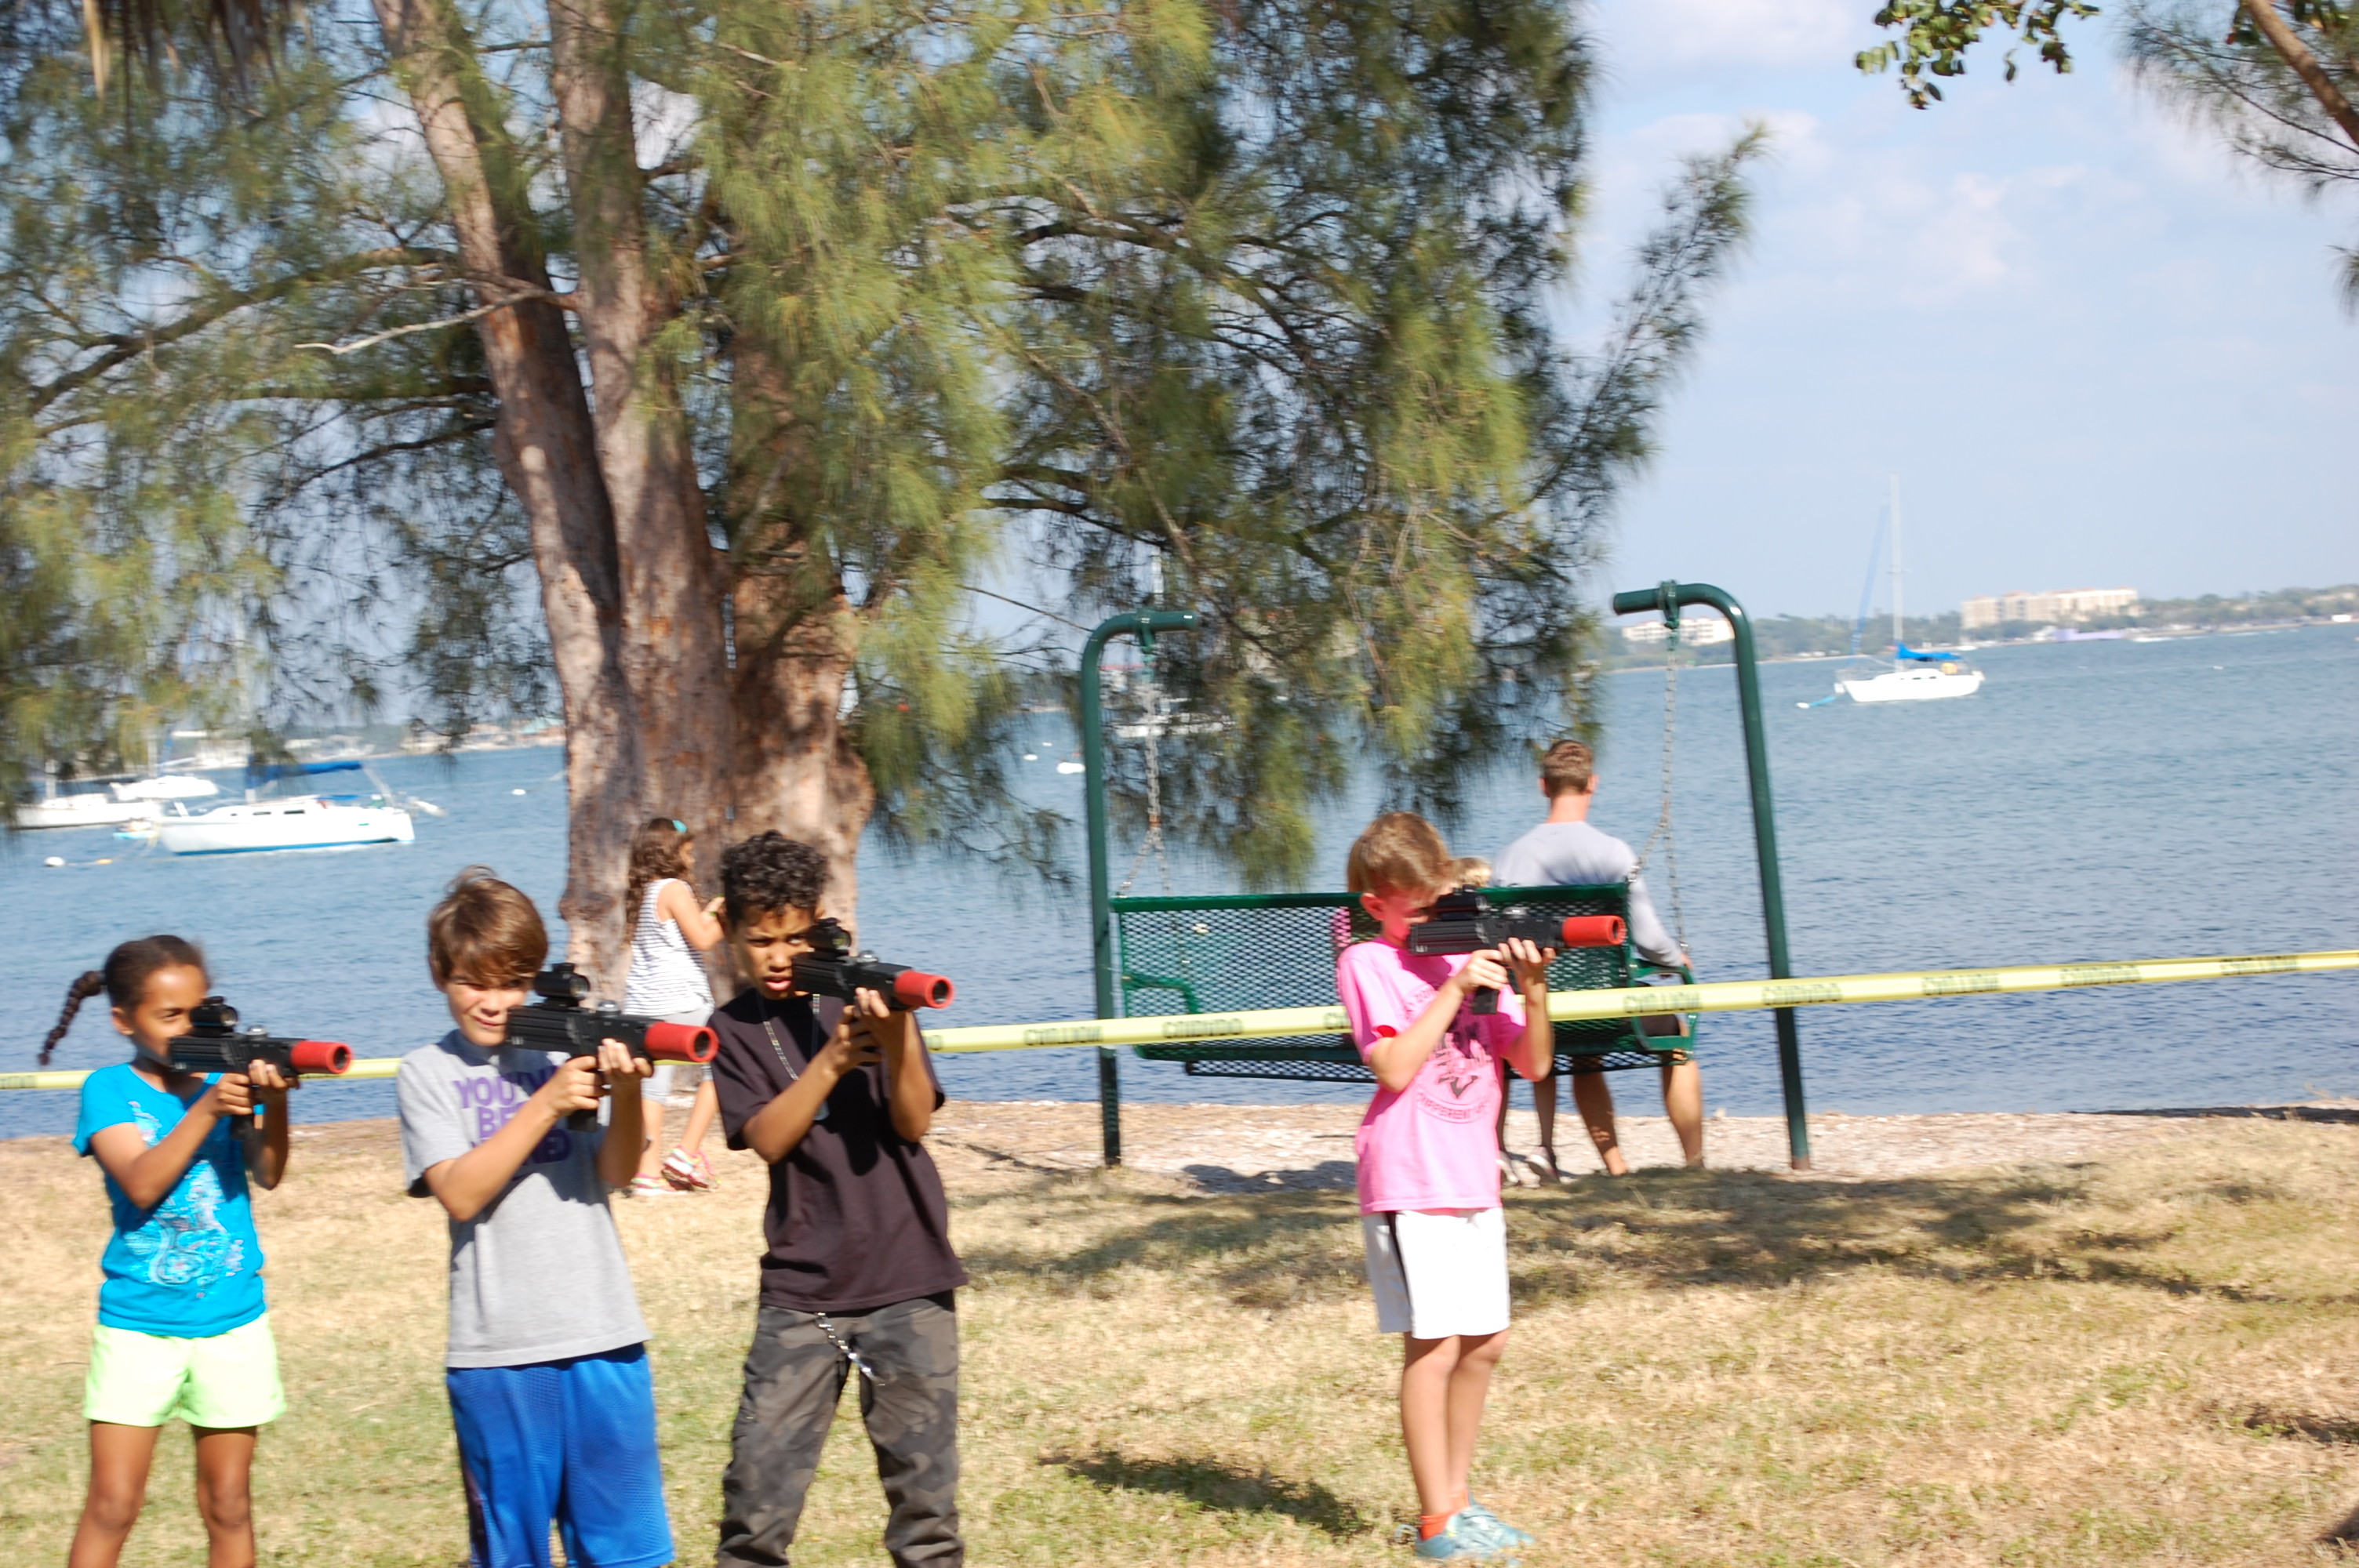 laser tag in Ft. Myers,FL